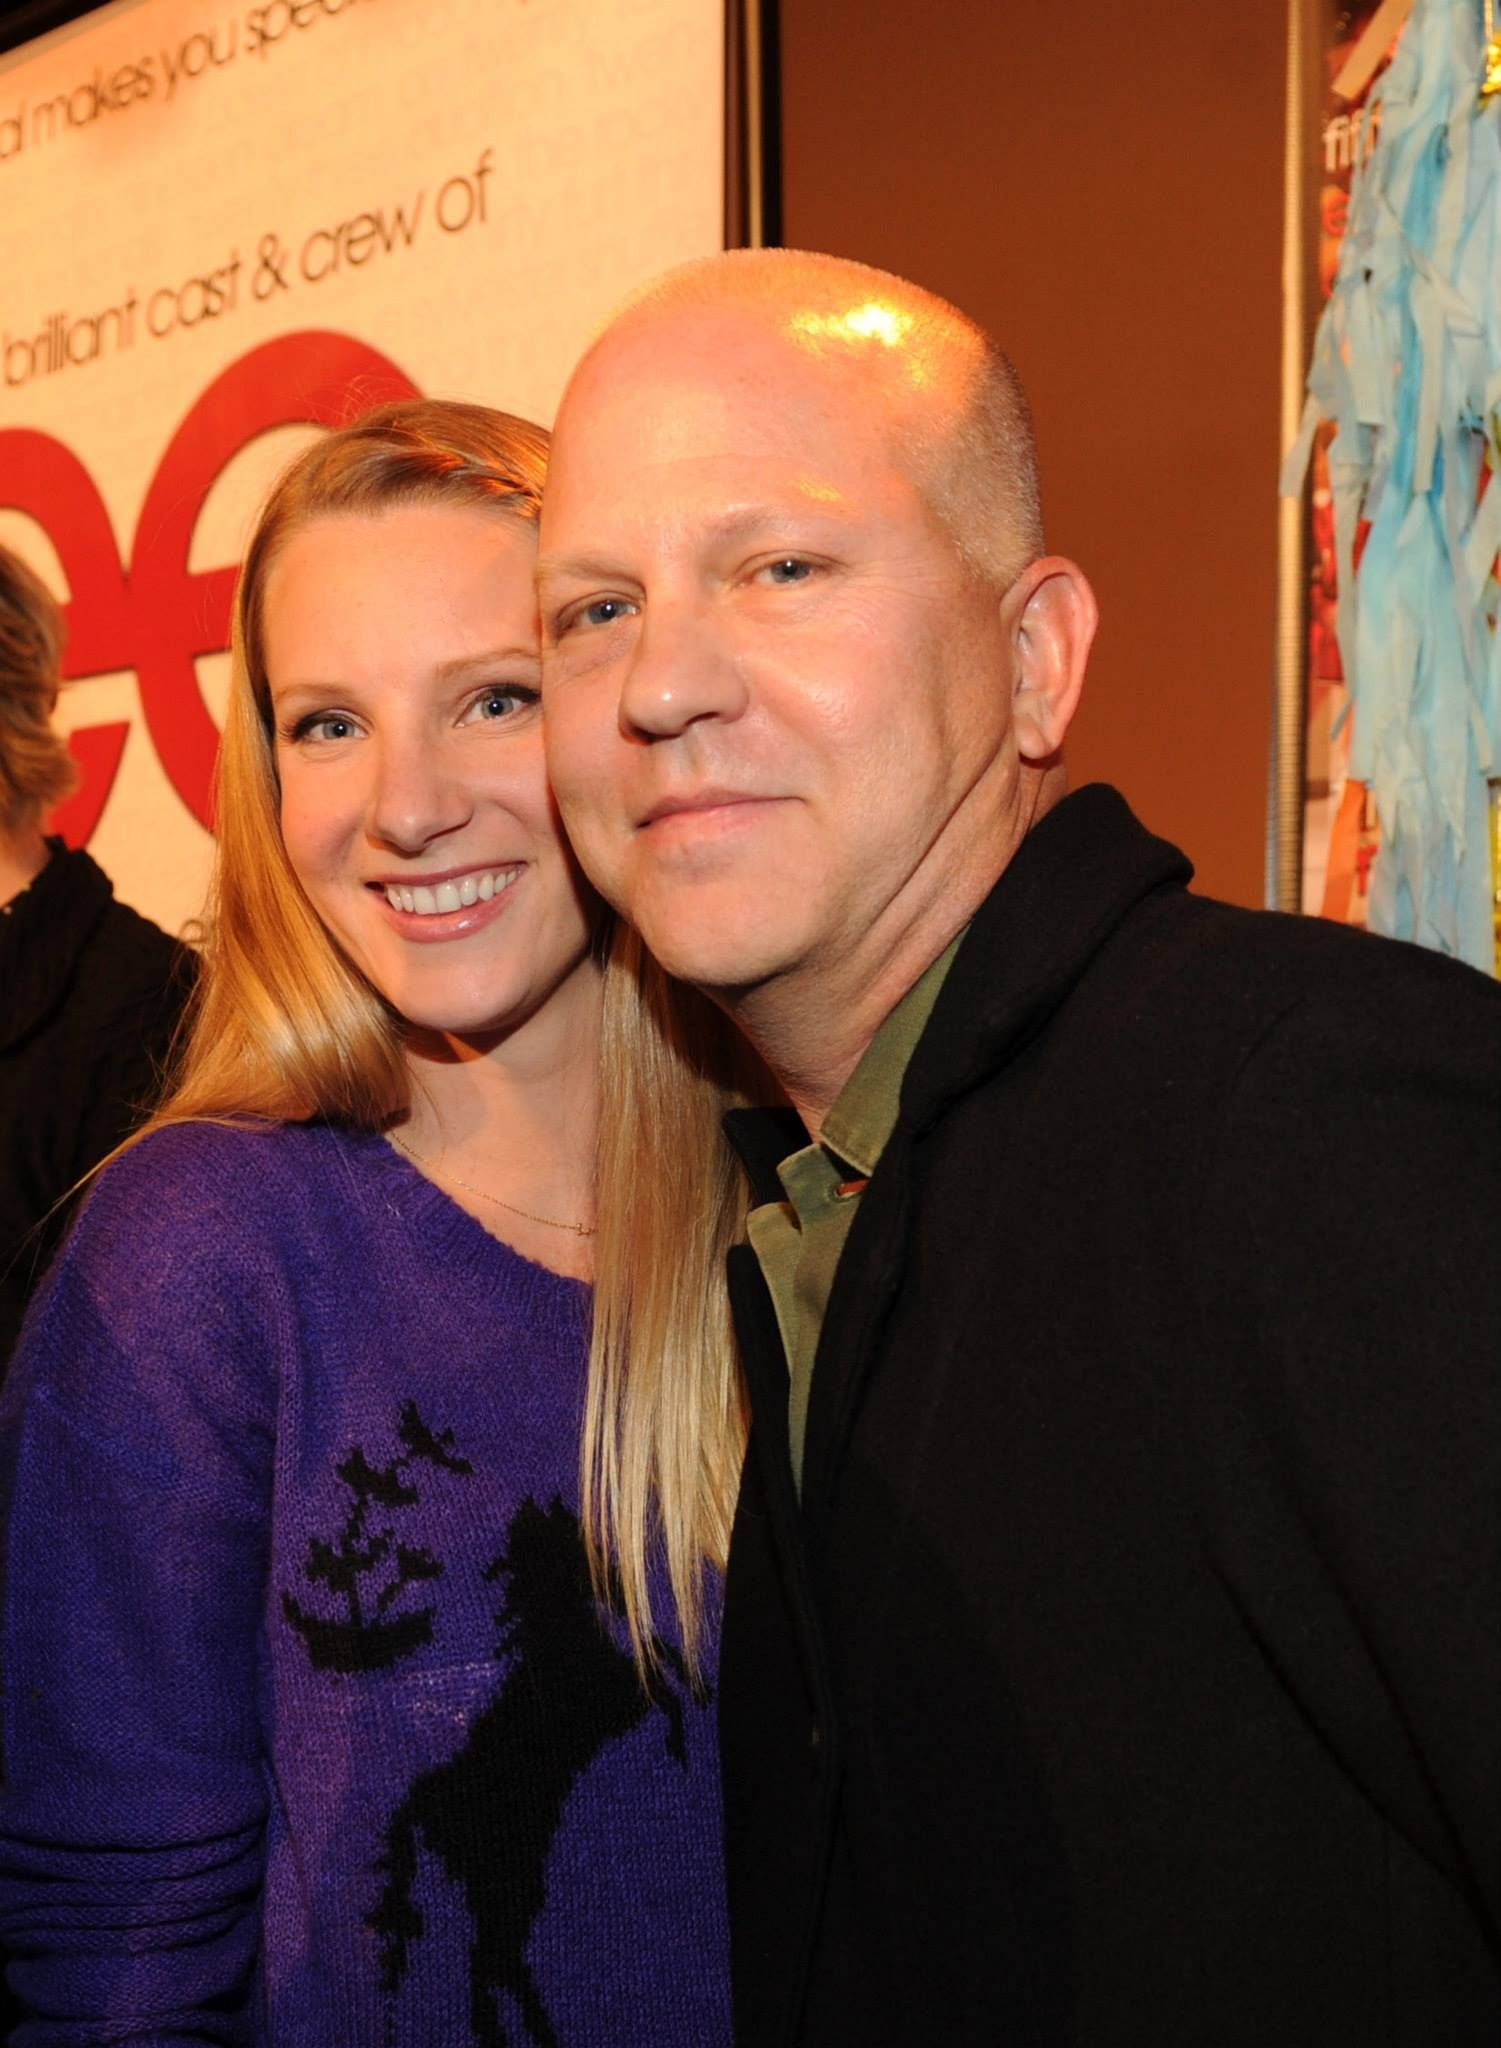 GLEE: The GLEE cast celebrates during the GLEE 100th Episode on Monday, Feb. 24 in Los Angeles,CA. (Pictured L-R) Heather Morris and Creator and Executive producer Ryan Murphy.